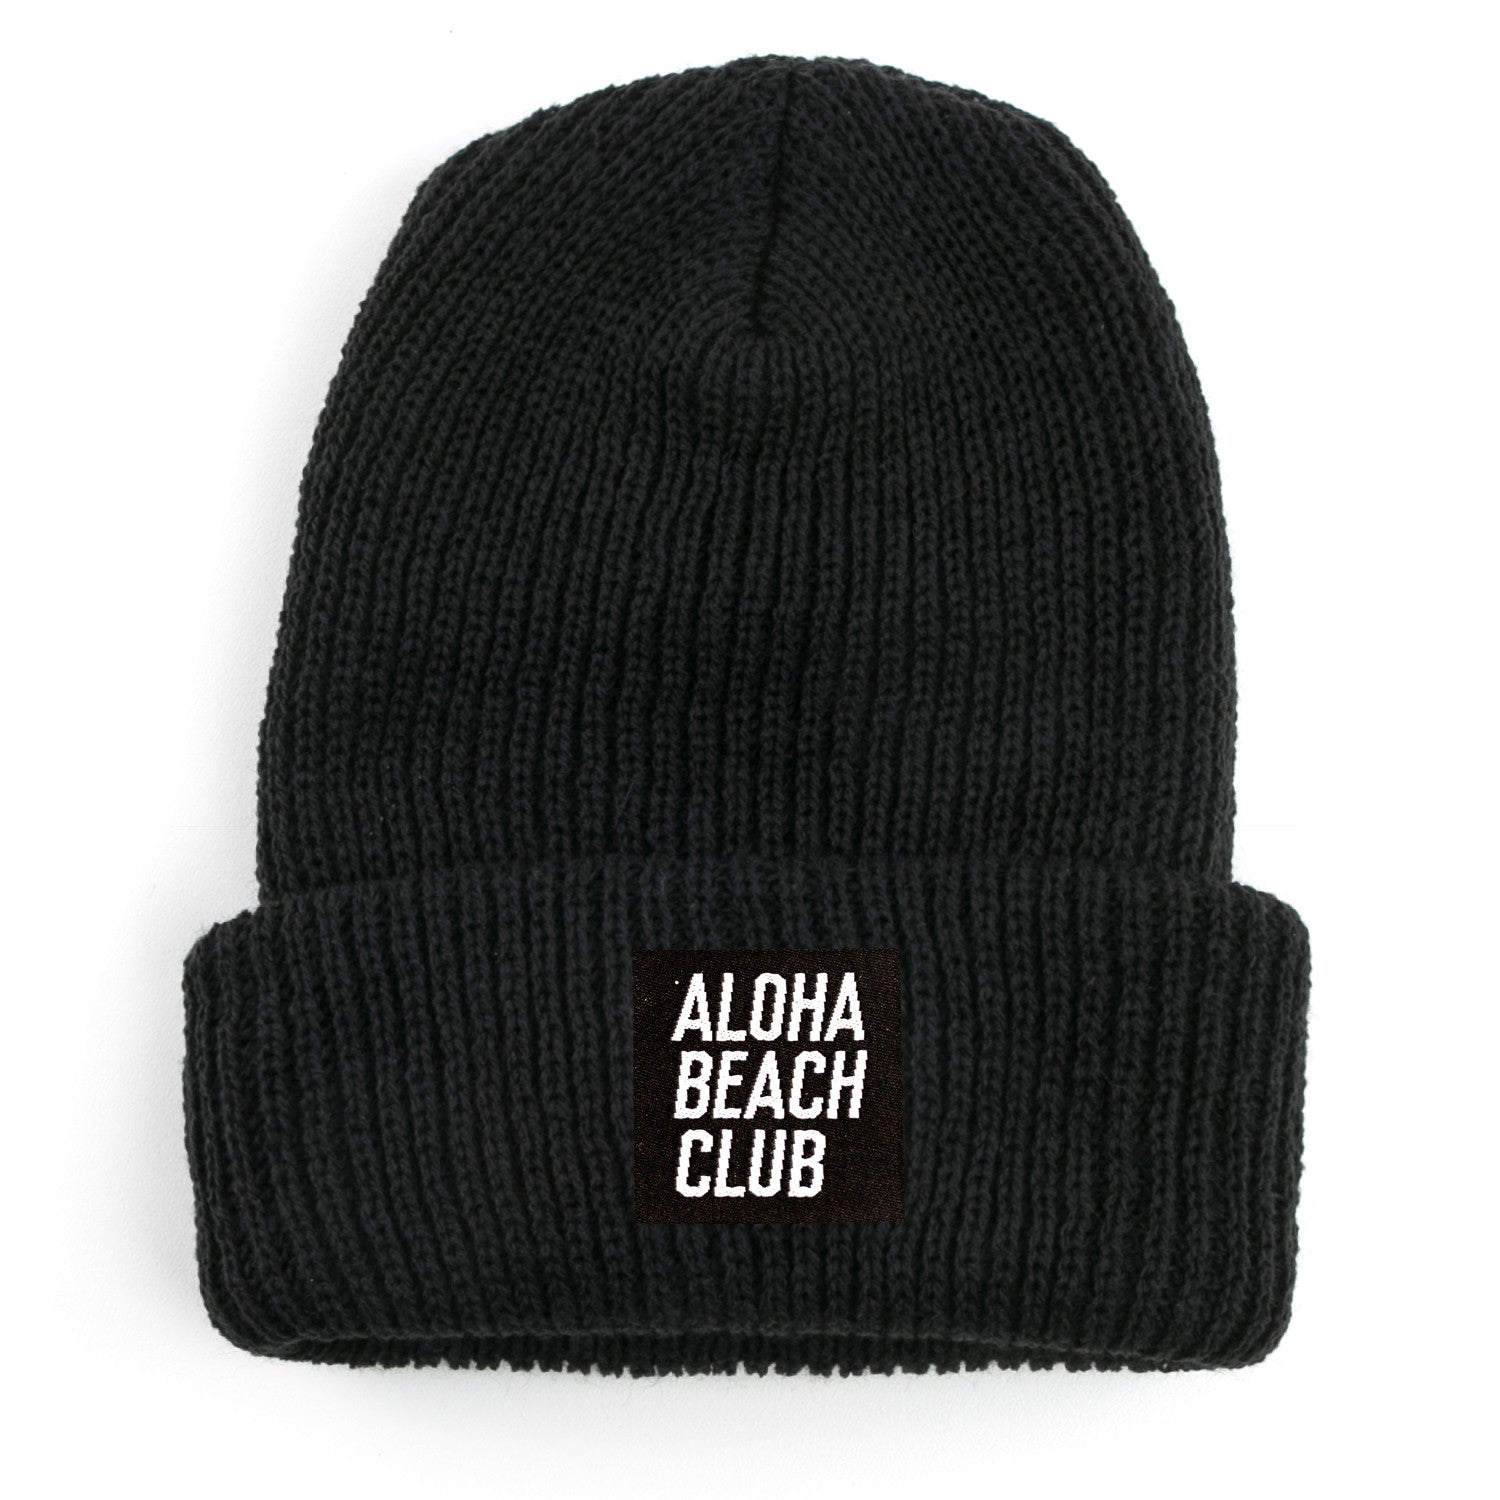 Aloha Beach Club - Kurtz Beanie Black - Aloha Beach Club